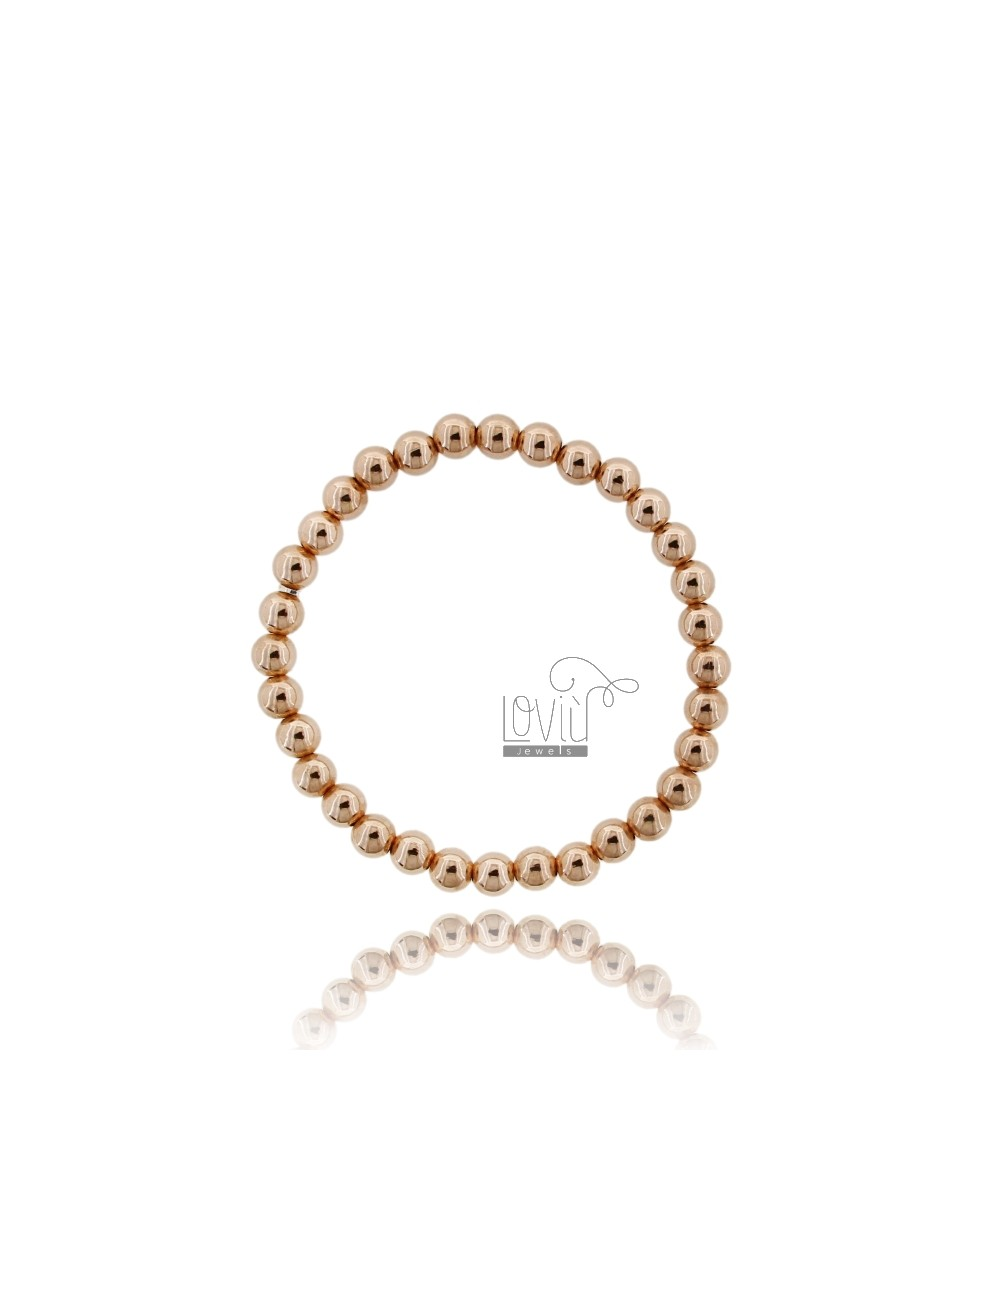 BRACELET WITH SPRING BALL 6 MM SILVER ROSE GOLD PLATED 925 ‰